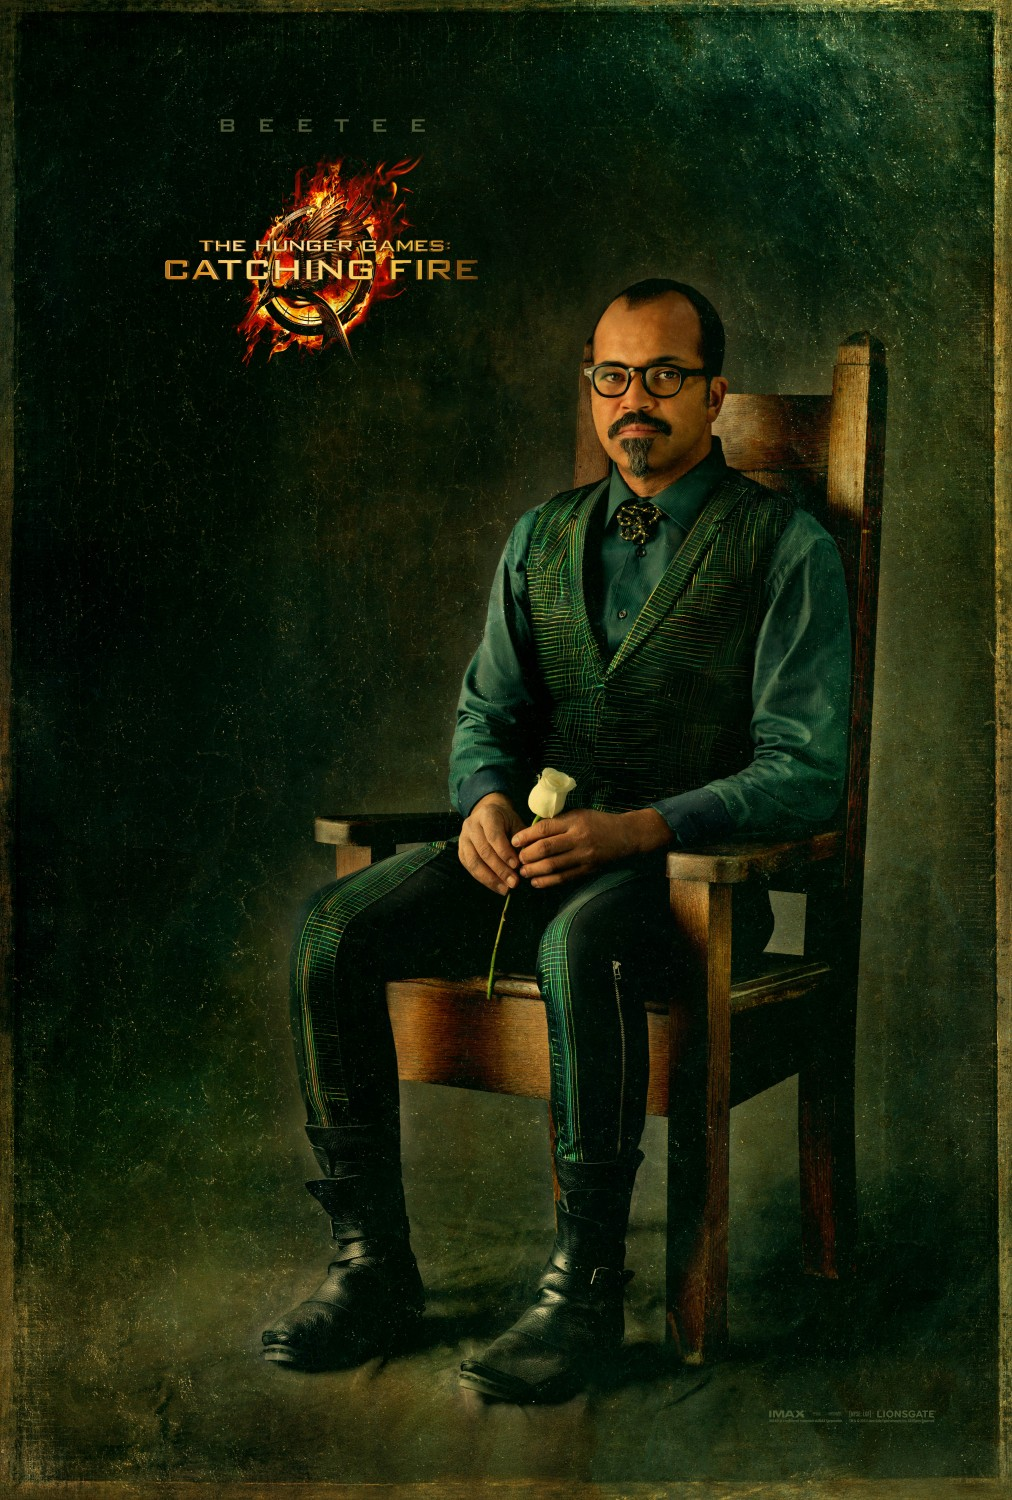 Catching Fire Beetee Character Poster